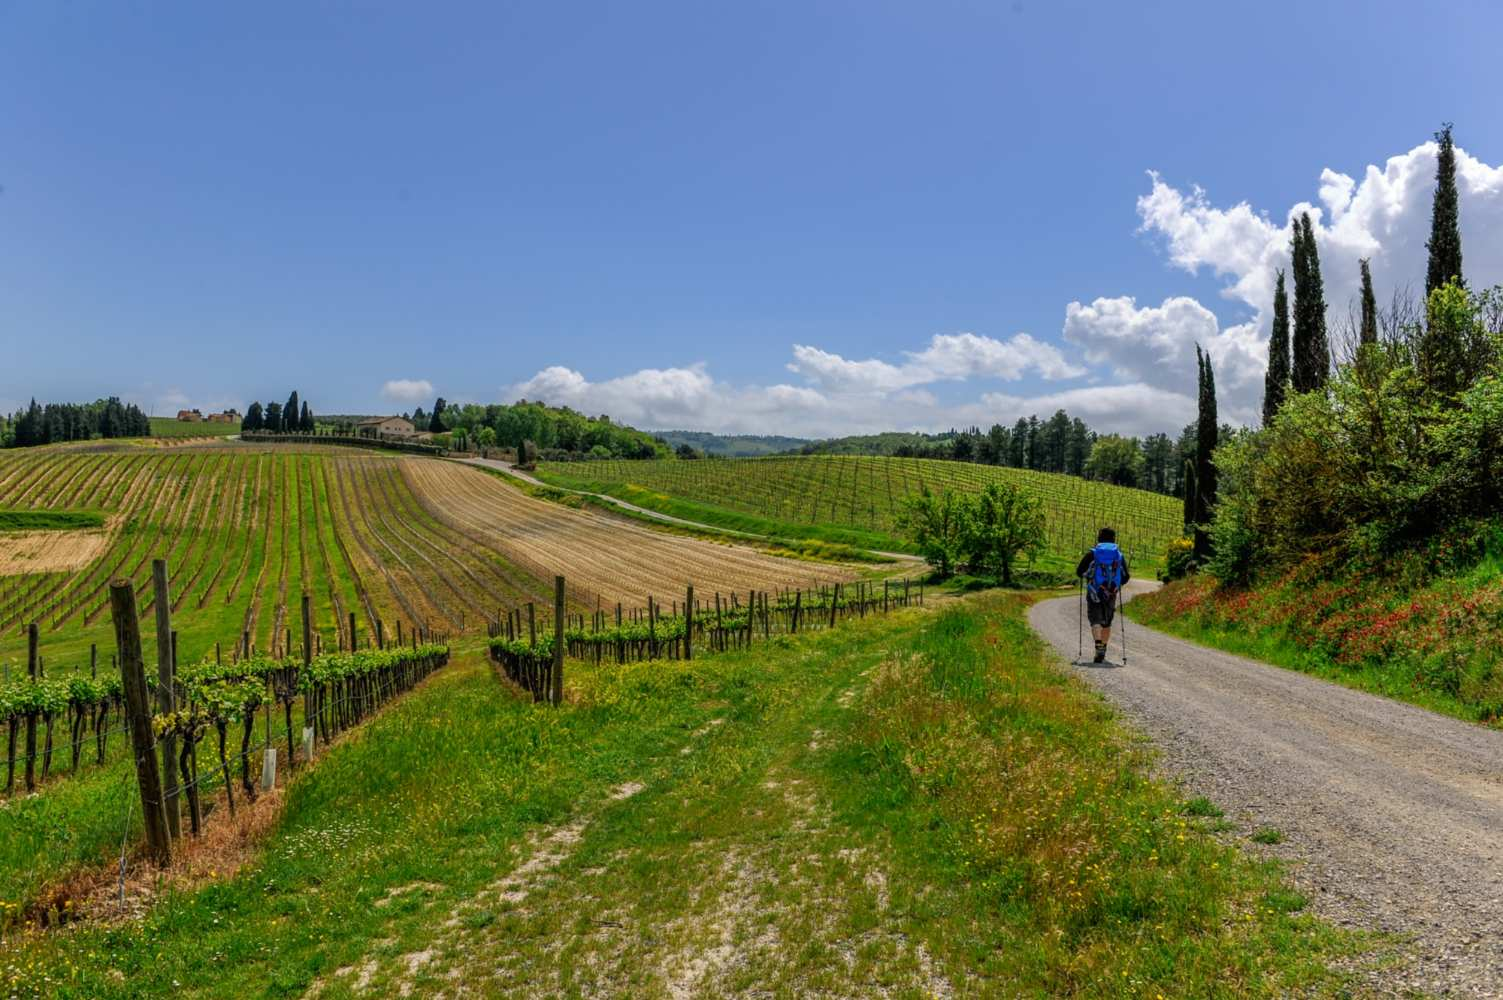 Walking along the Via Francigena in Tuscany